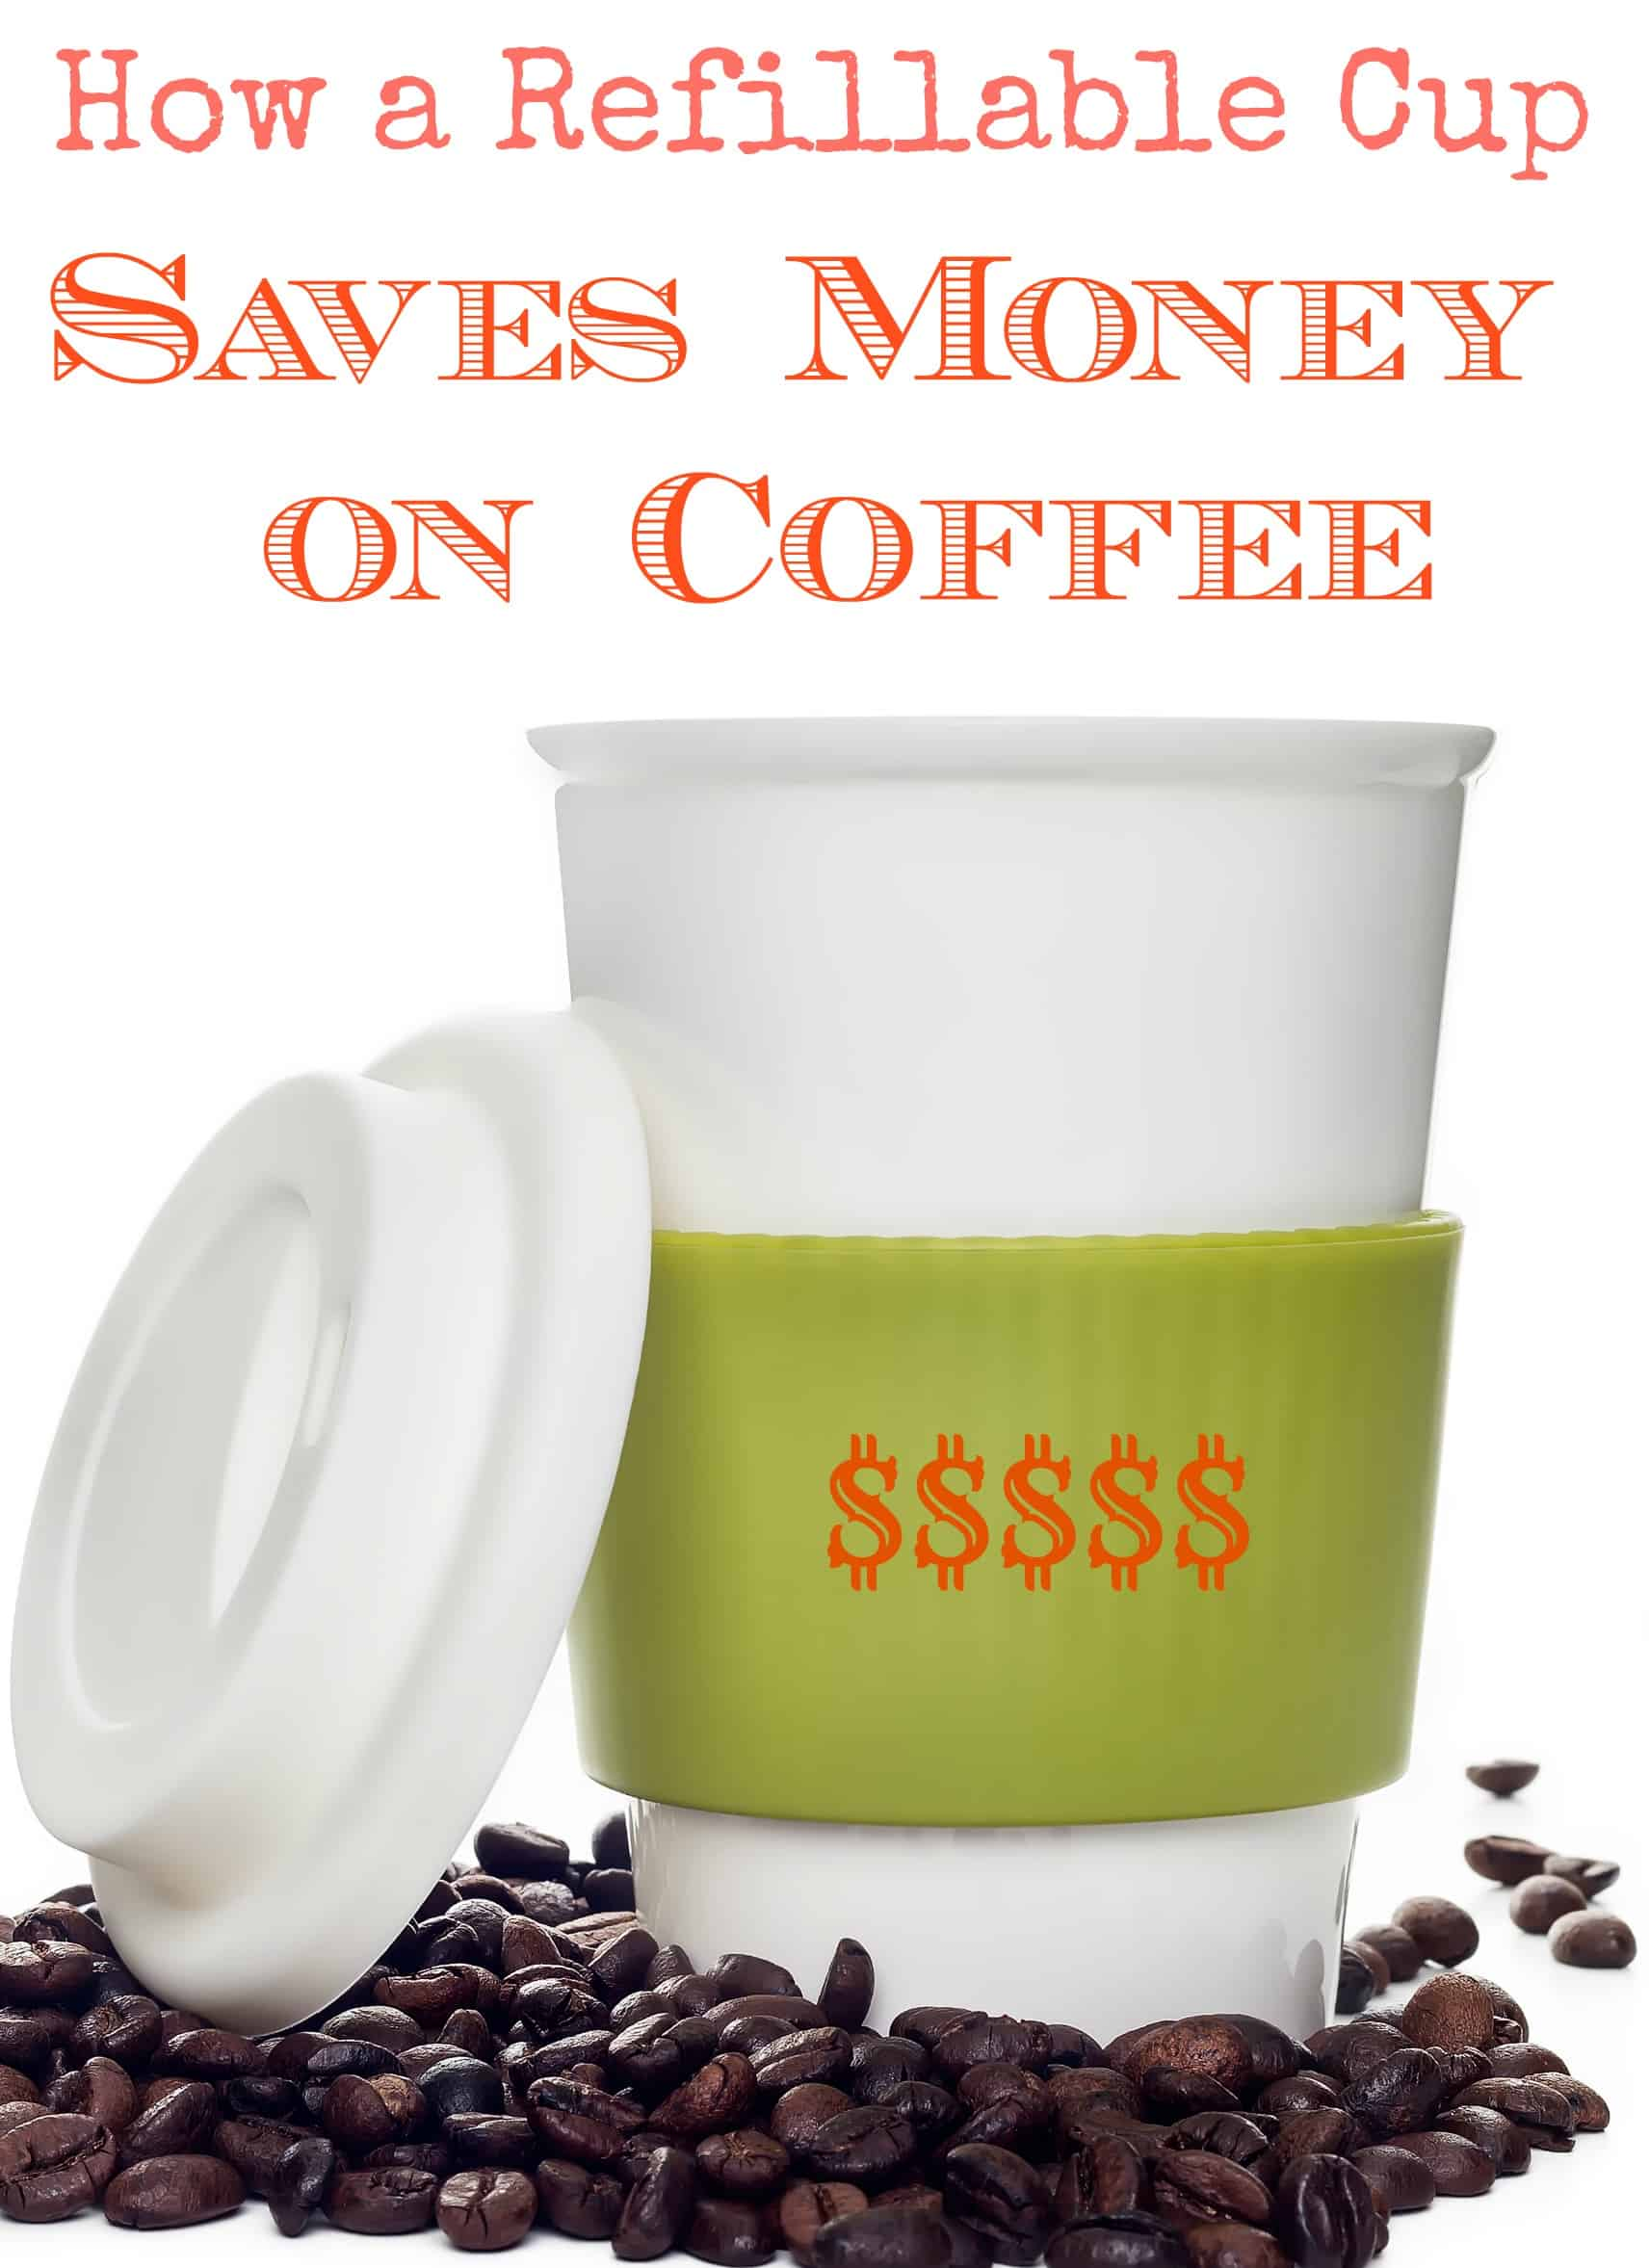 How a Refillable Cup Saves Money on Coffee